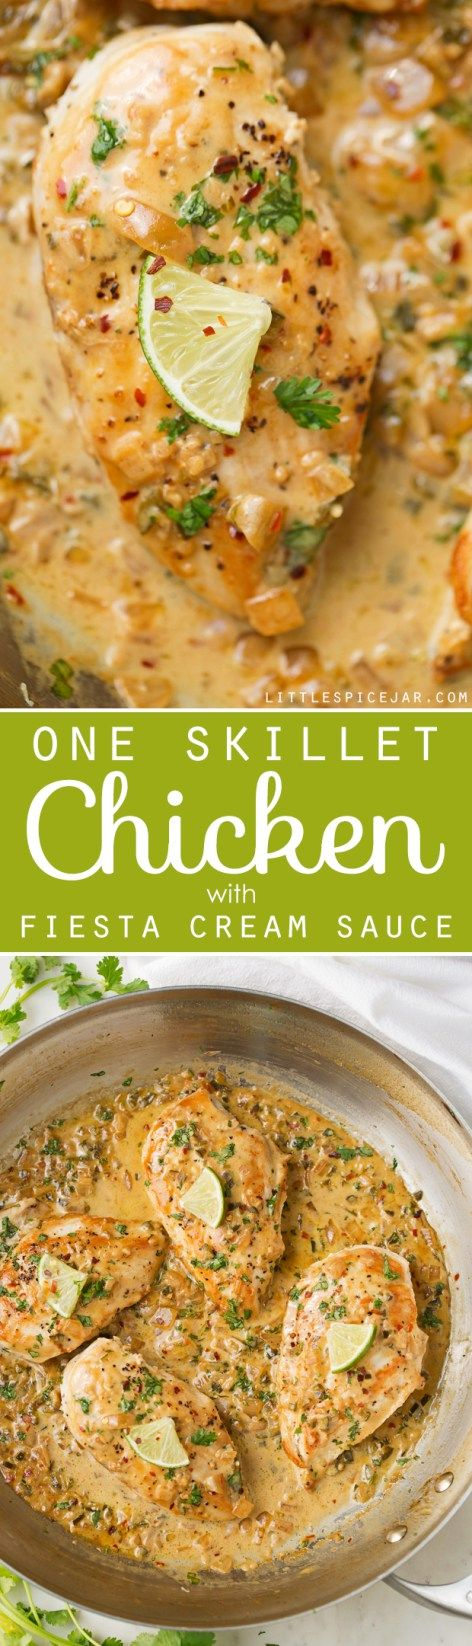 One Skillet Chicken with Fiesta Cream Sauce - a simple, 30 minutes, one skillet recipe topped with a cilantro, lime, jalapeño, and garlic flavored sauce. #oneskilletchicken #skilletchicken #chickendinner   Littlespicejar.com